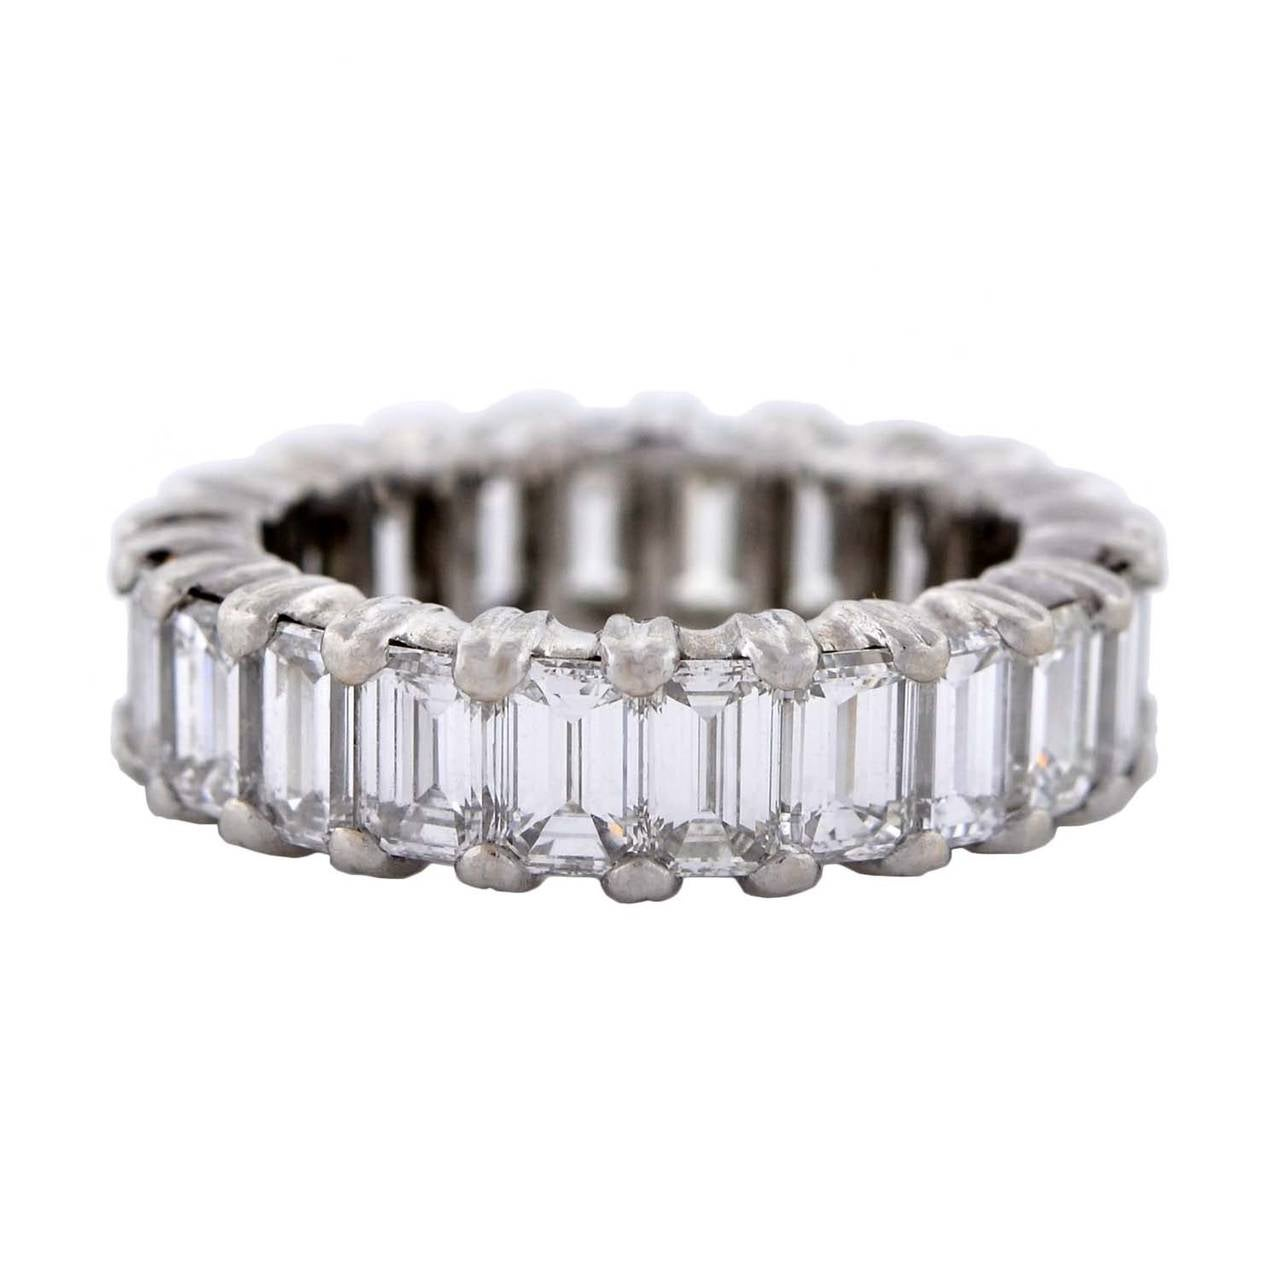 Contemporary Emerald Cut Diamond Platinum Eternity Band 6ctw 2